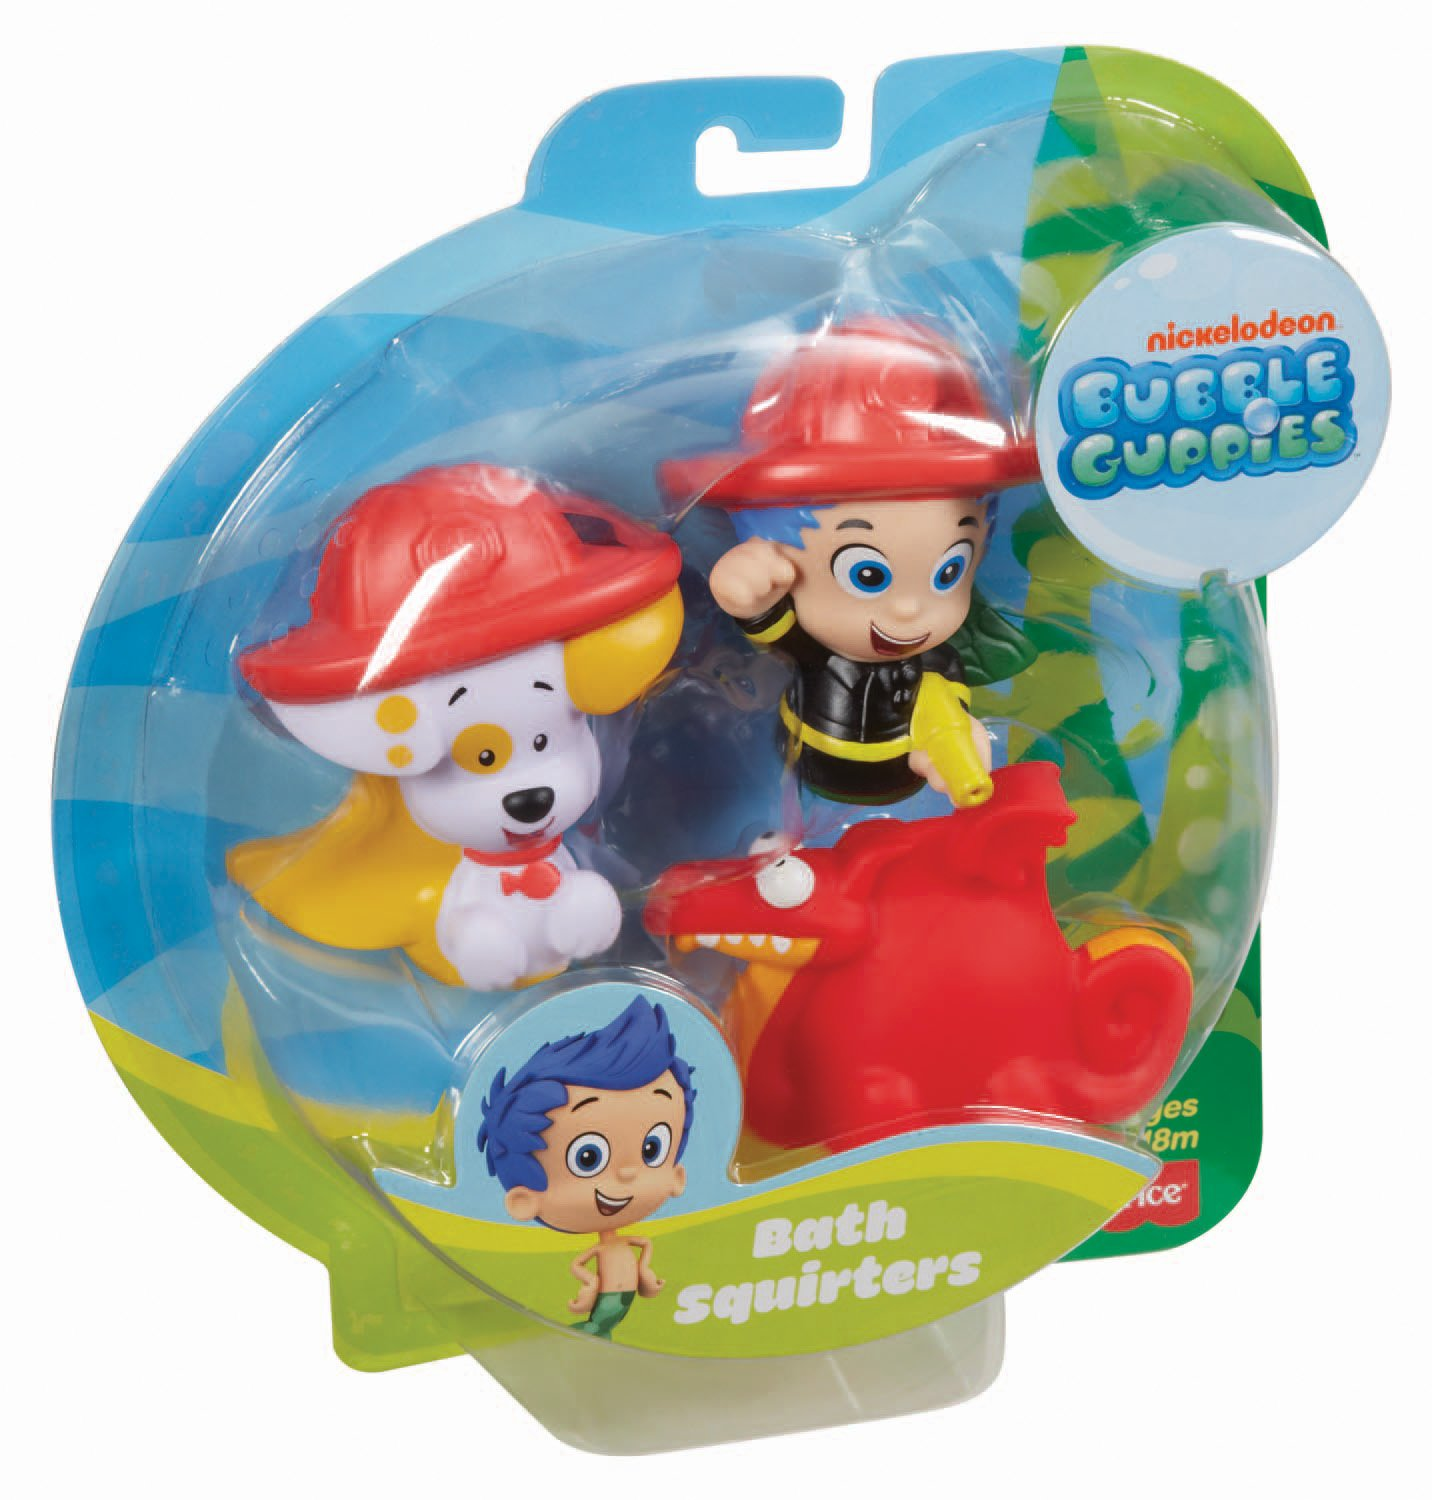 Fisher price nickelodeon bubble guppies gil bubble puppy and water dragon bath ebay - Bubulles guppies ...